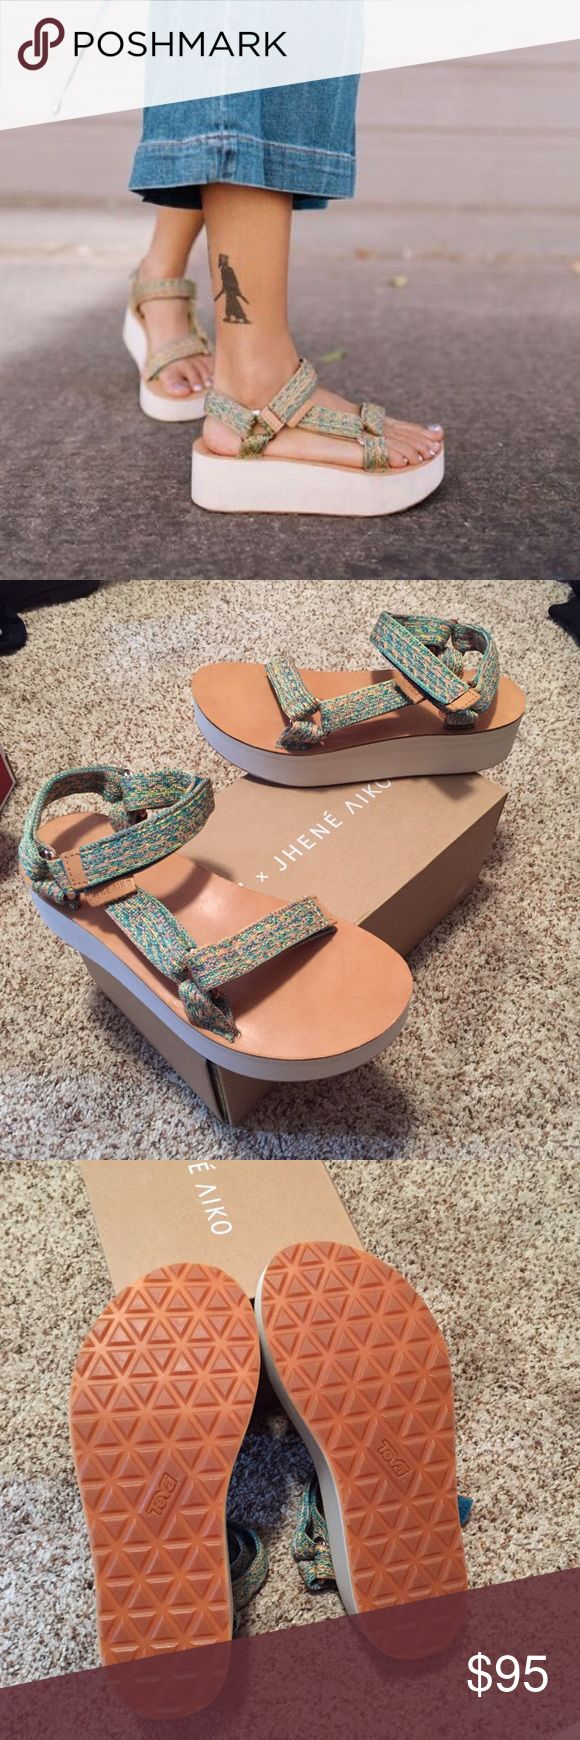 NWT Jhene Aiko x Teva Universal Platform Sandals brand new with tags, comes with original box. Jhene Aiko x Teva limited edition Collab. Sold Out everywhere. No trades. women's size 8 Teva Shoes Sandals